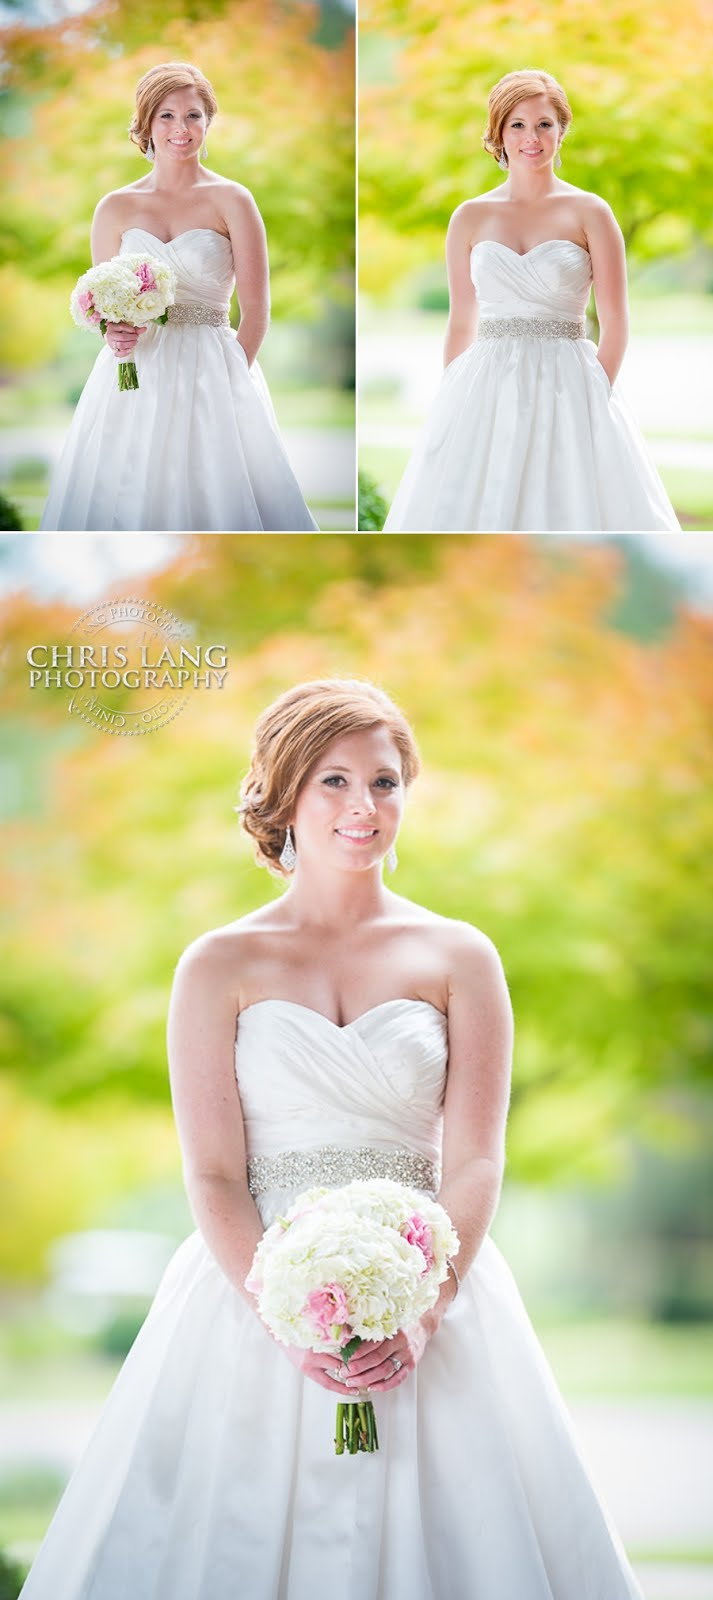 River Landing Wedding Photos - Chris Lang Photography - River Landing Wedding Photography